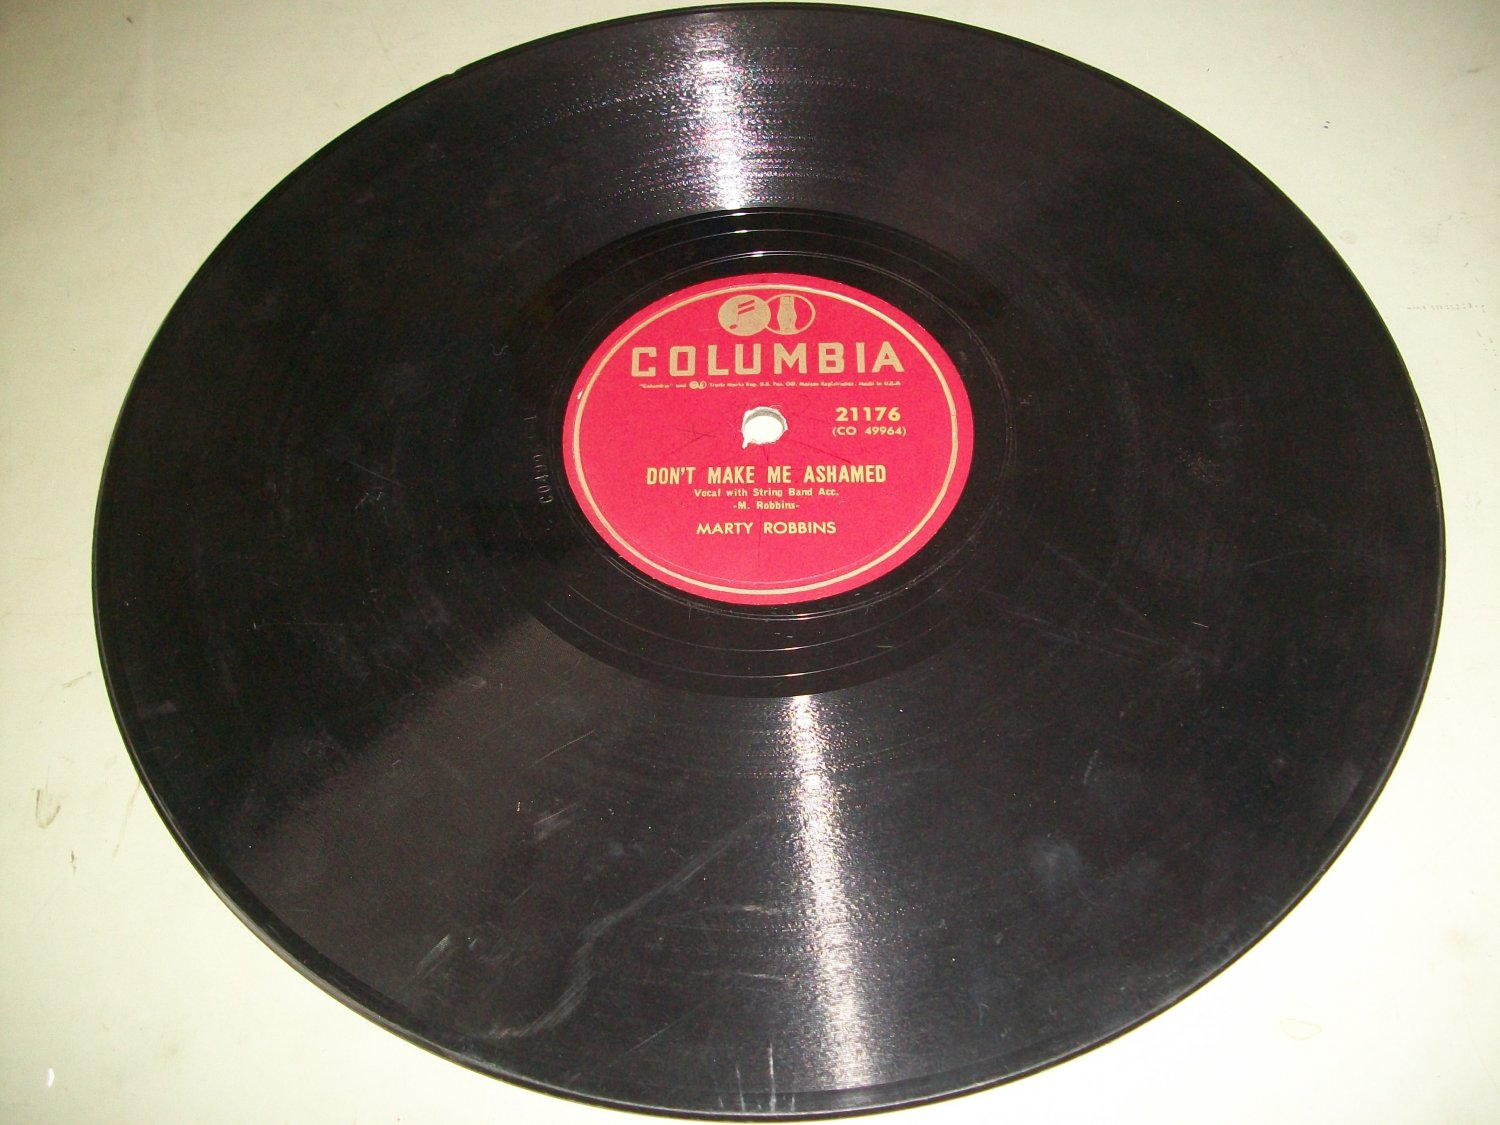 Marty Robbins - Don't Make Me Ashamed / It's A Long, Long Ride - COLUMBIA 21176 - Country 78 rpm